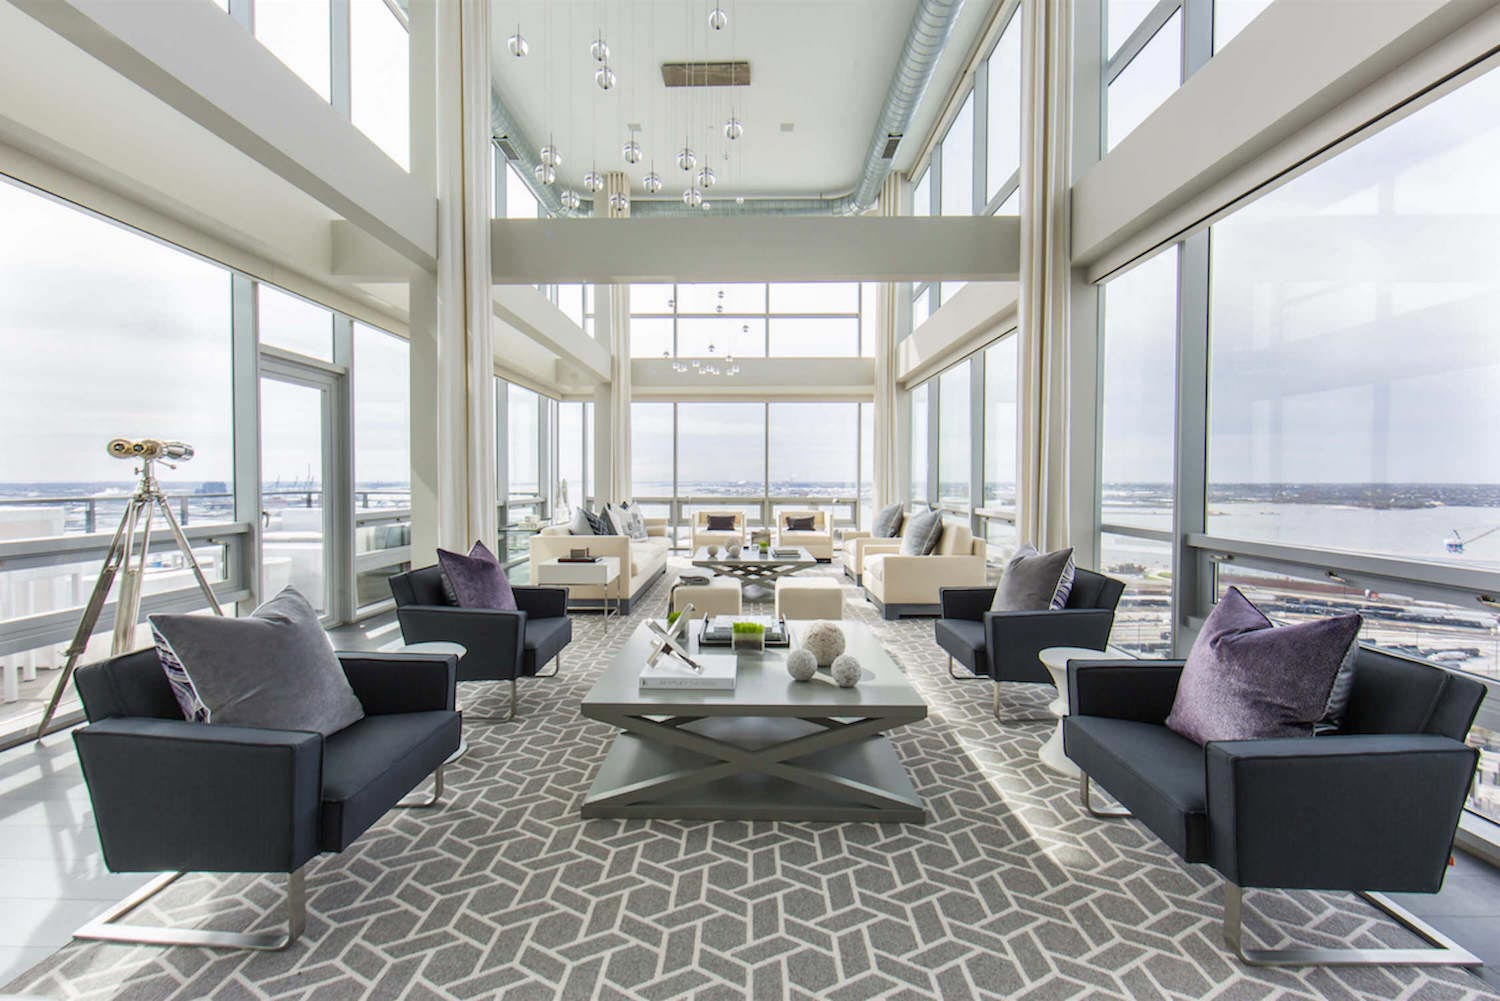 Penthouse With Floor To Ceiling Windows On Both Floors And